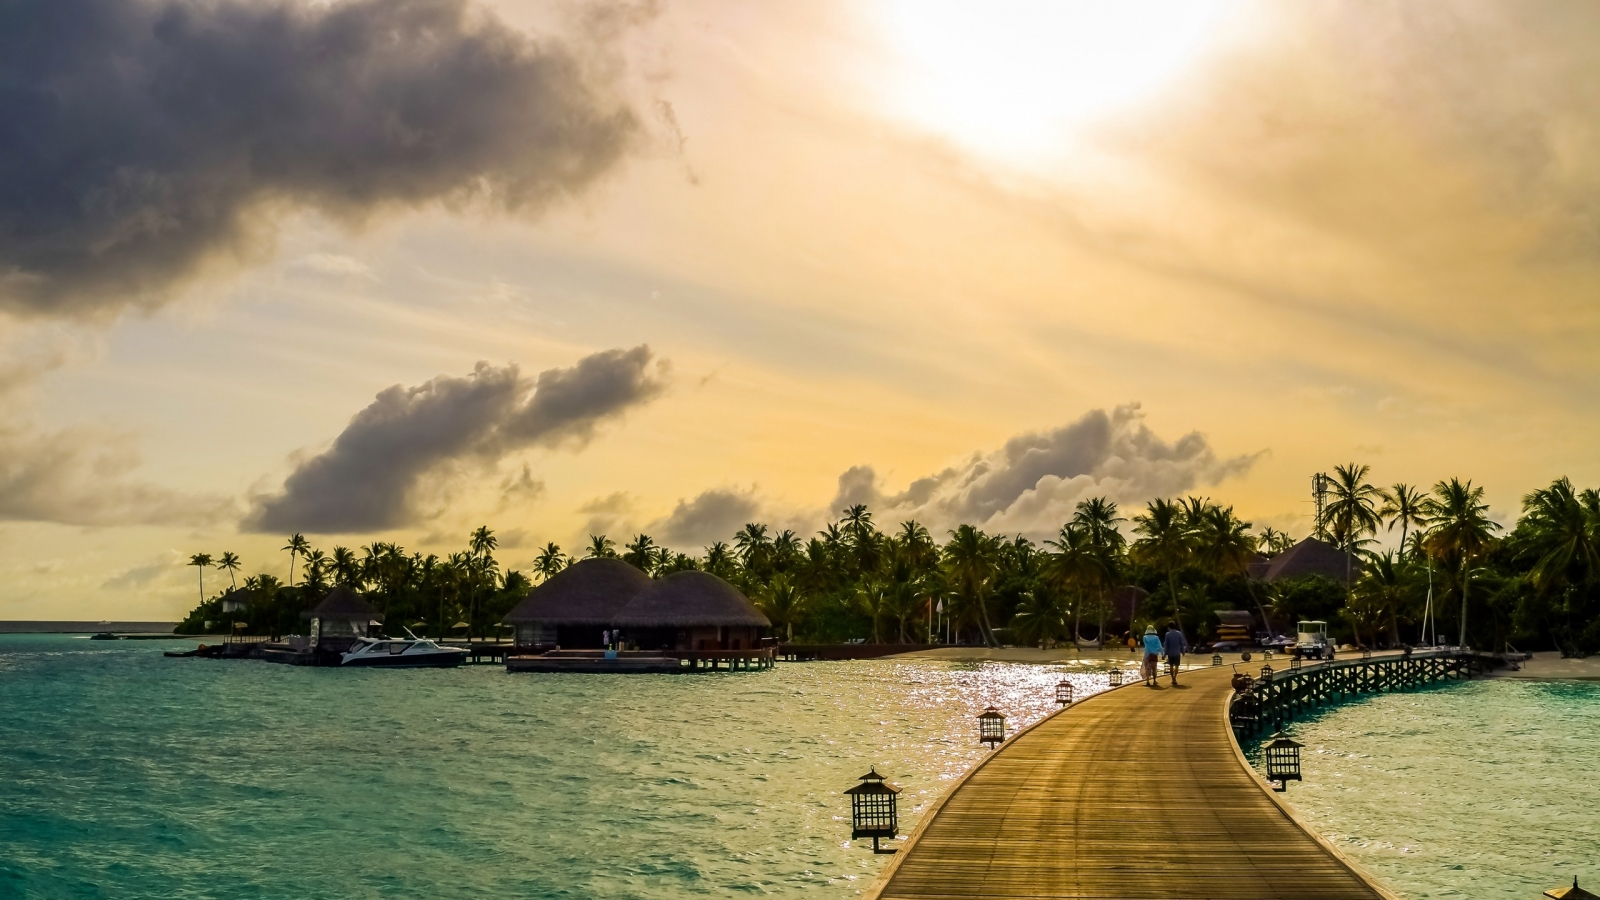 Exotic Maldives Beach for 1600 x 900 HDTV resolution